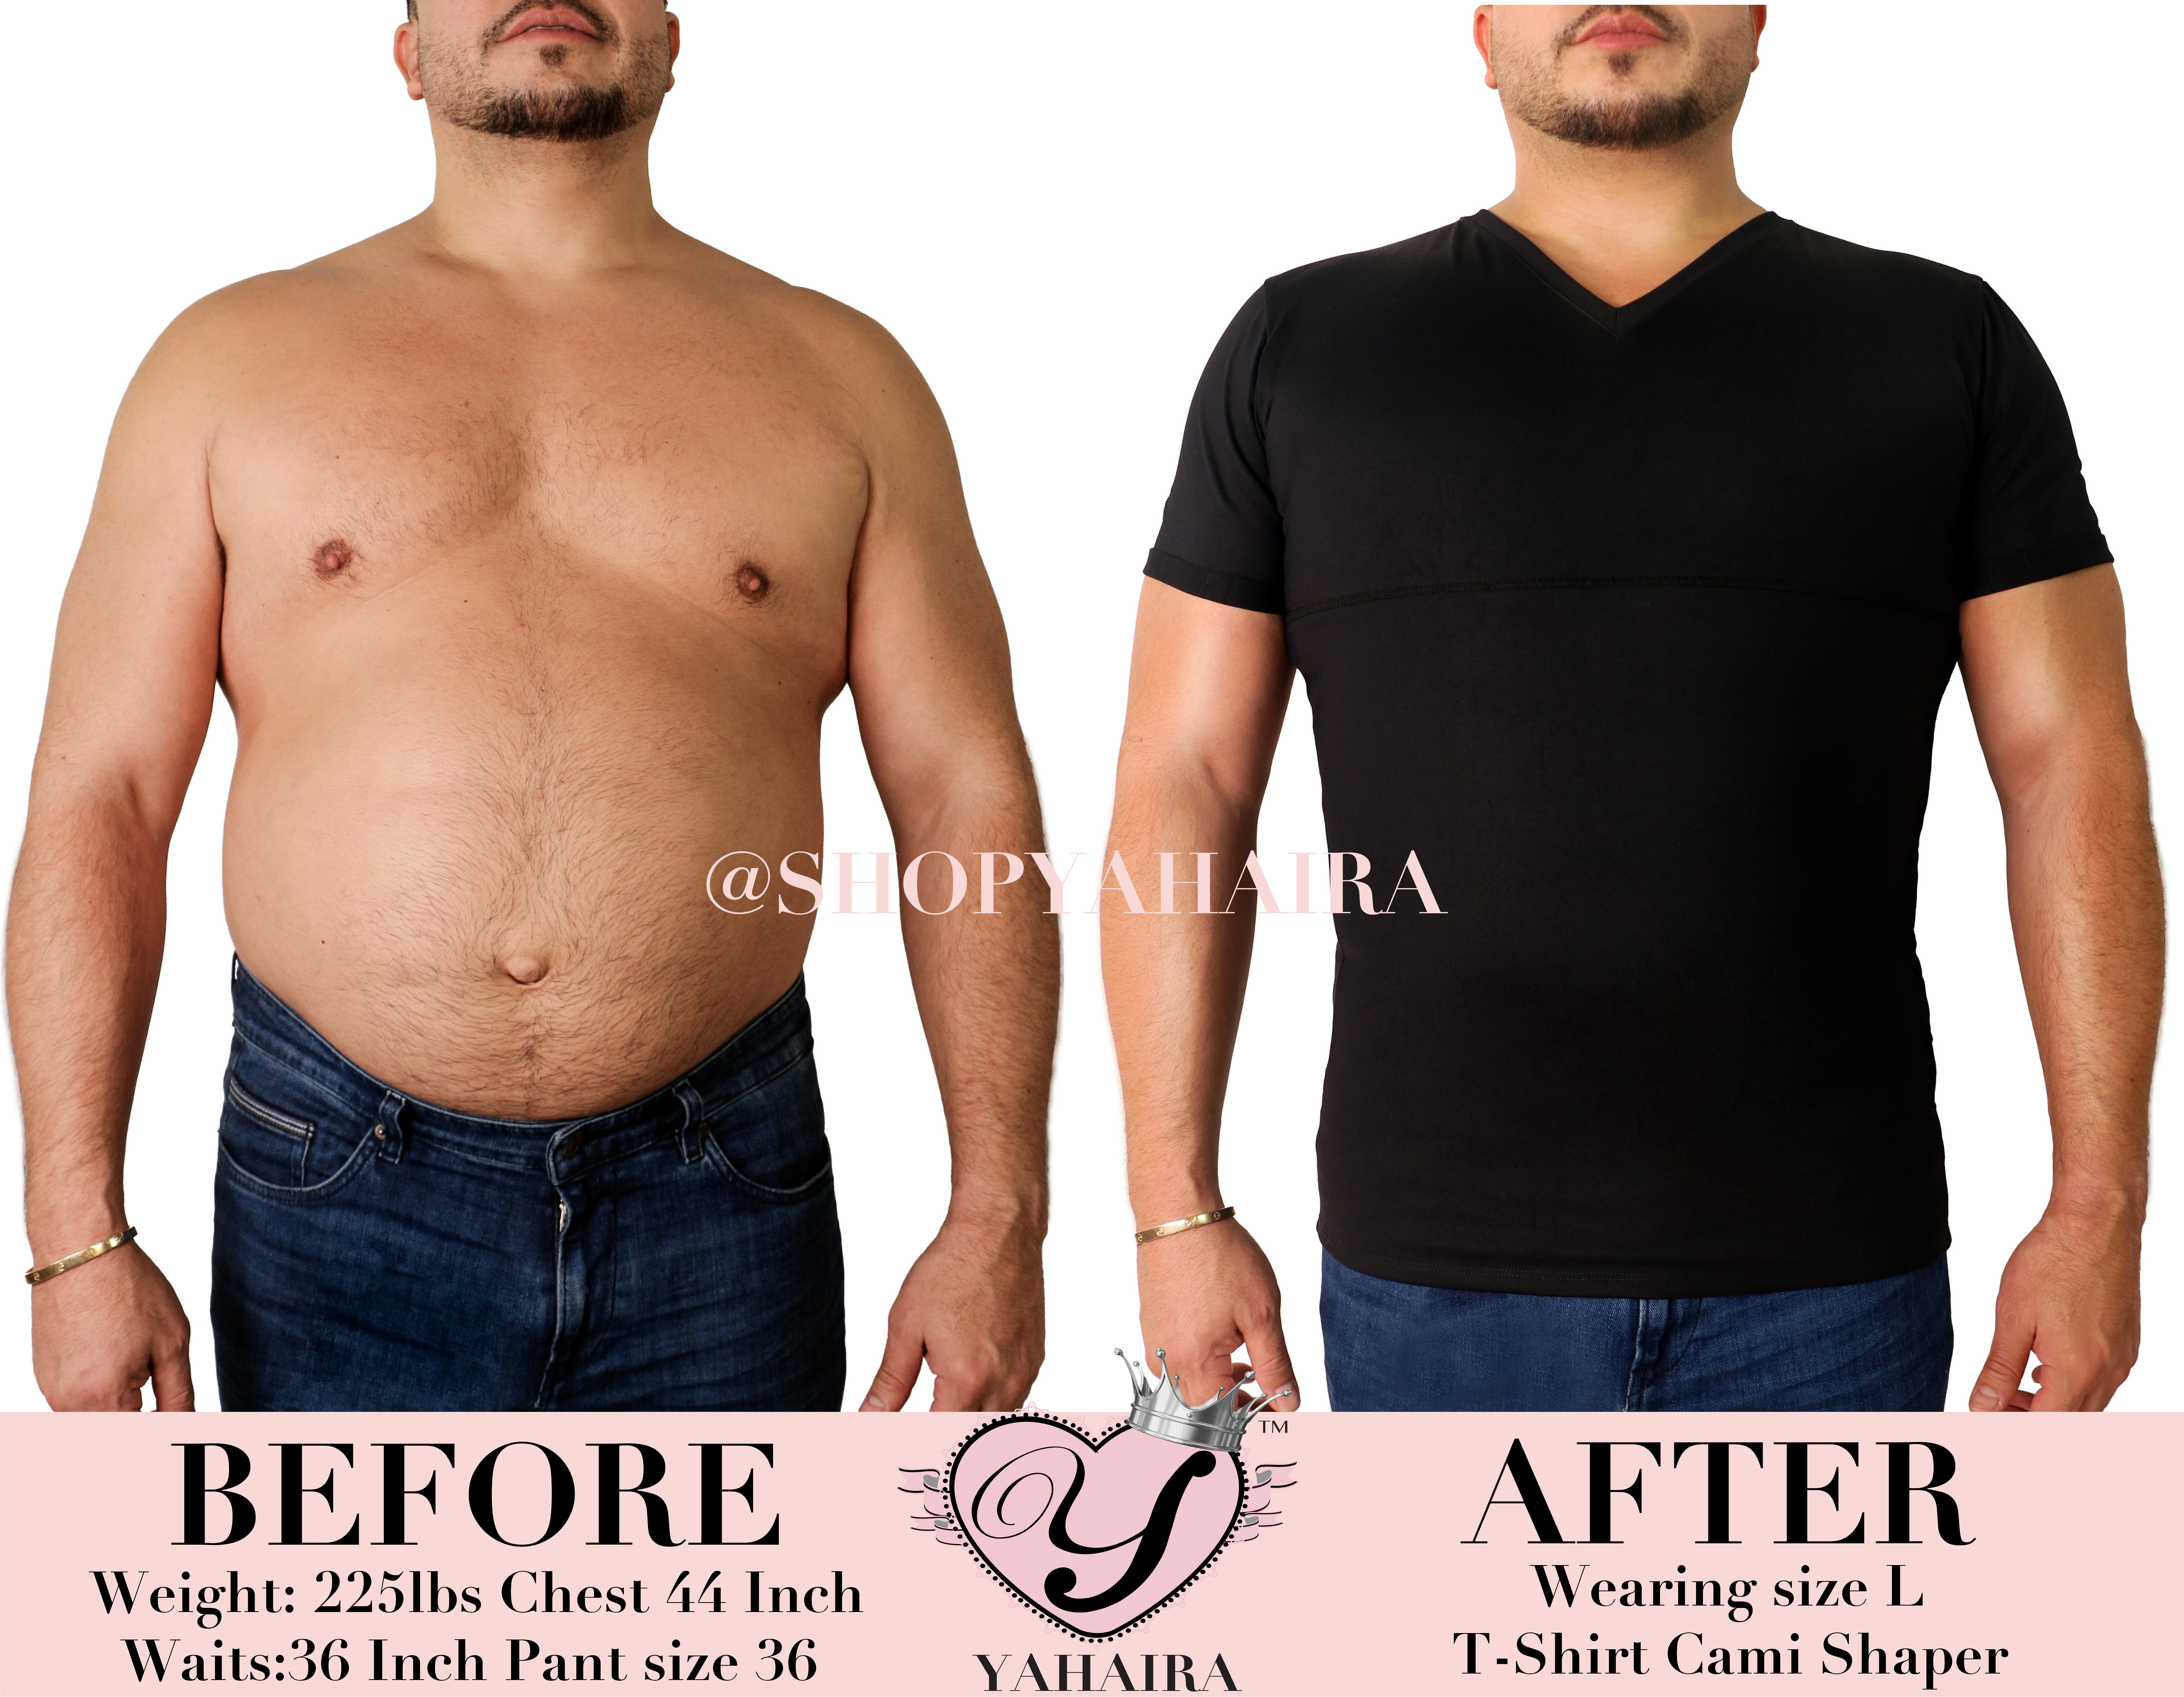 hhr-r-t-shirt-cami-shaper-mans-before-and-after-water-mark-img-9520.jpg